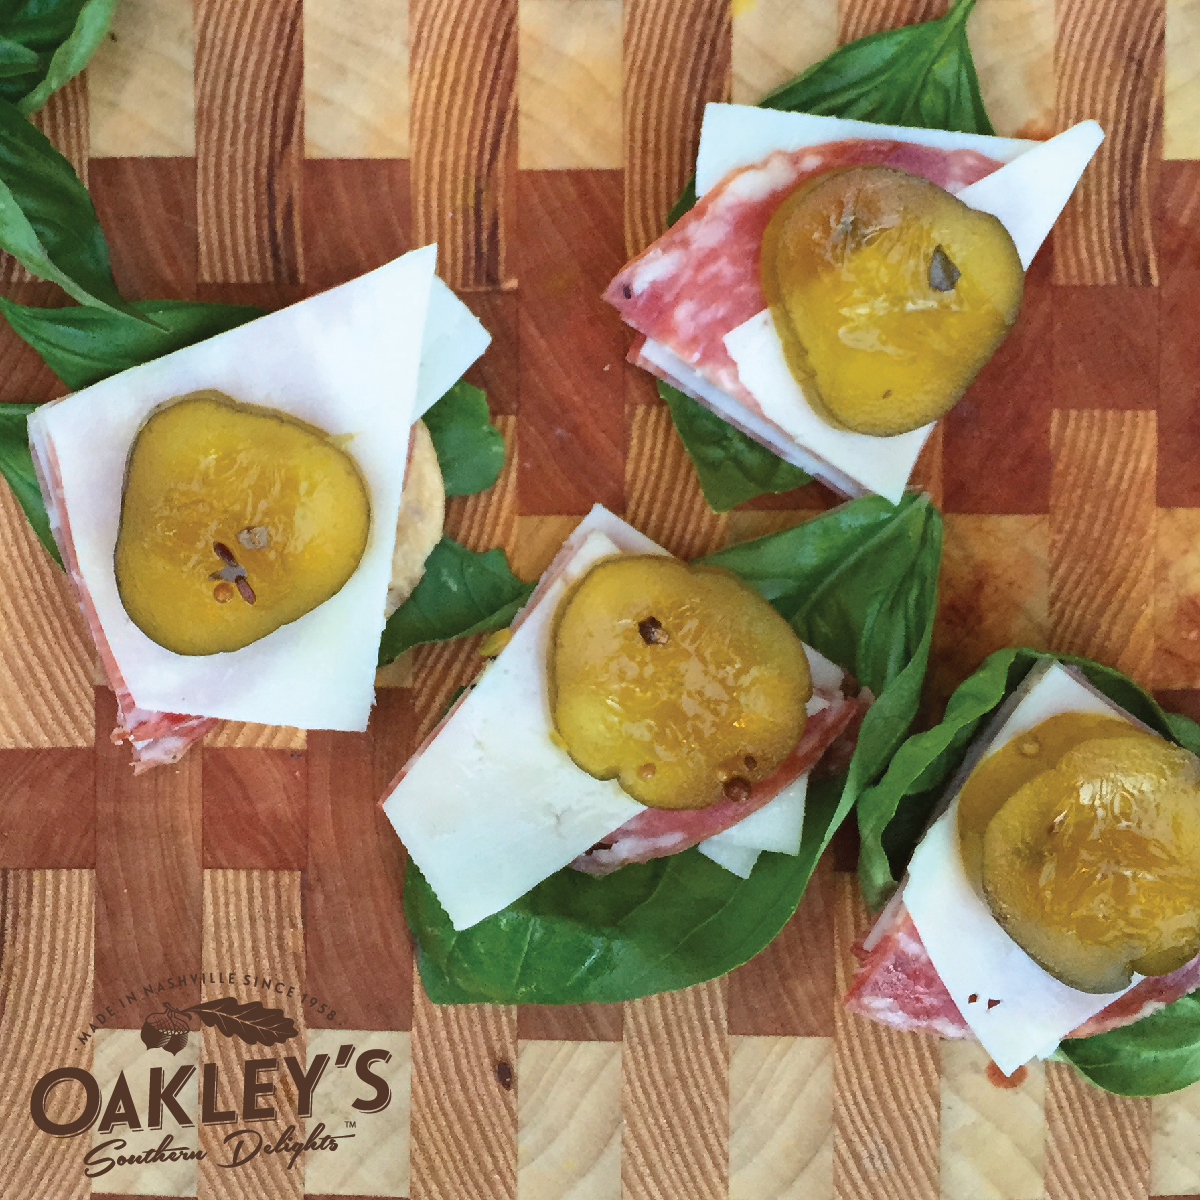 Easy to make appetizers from Oakley's Southern Delights